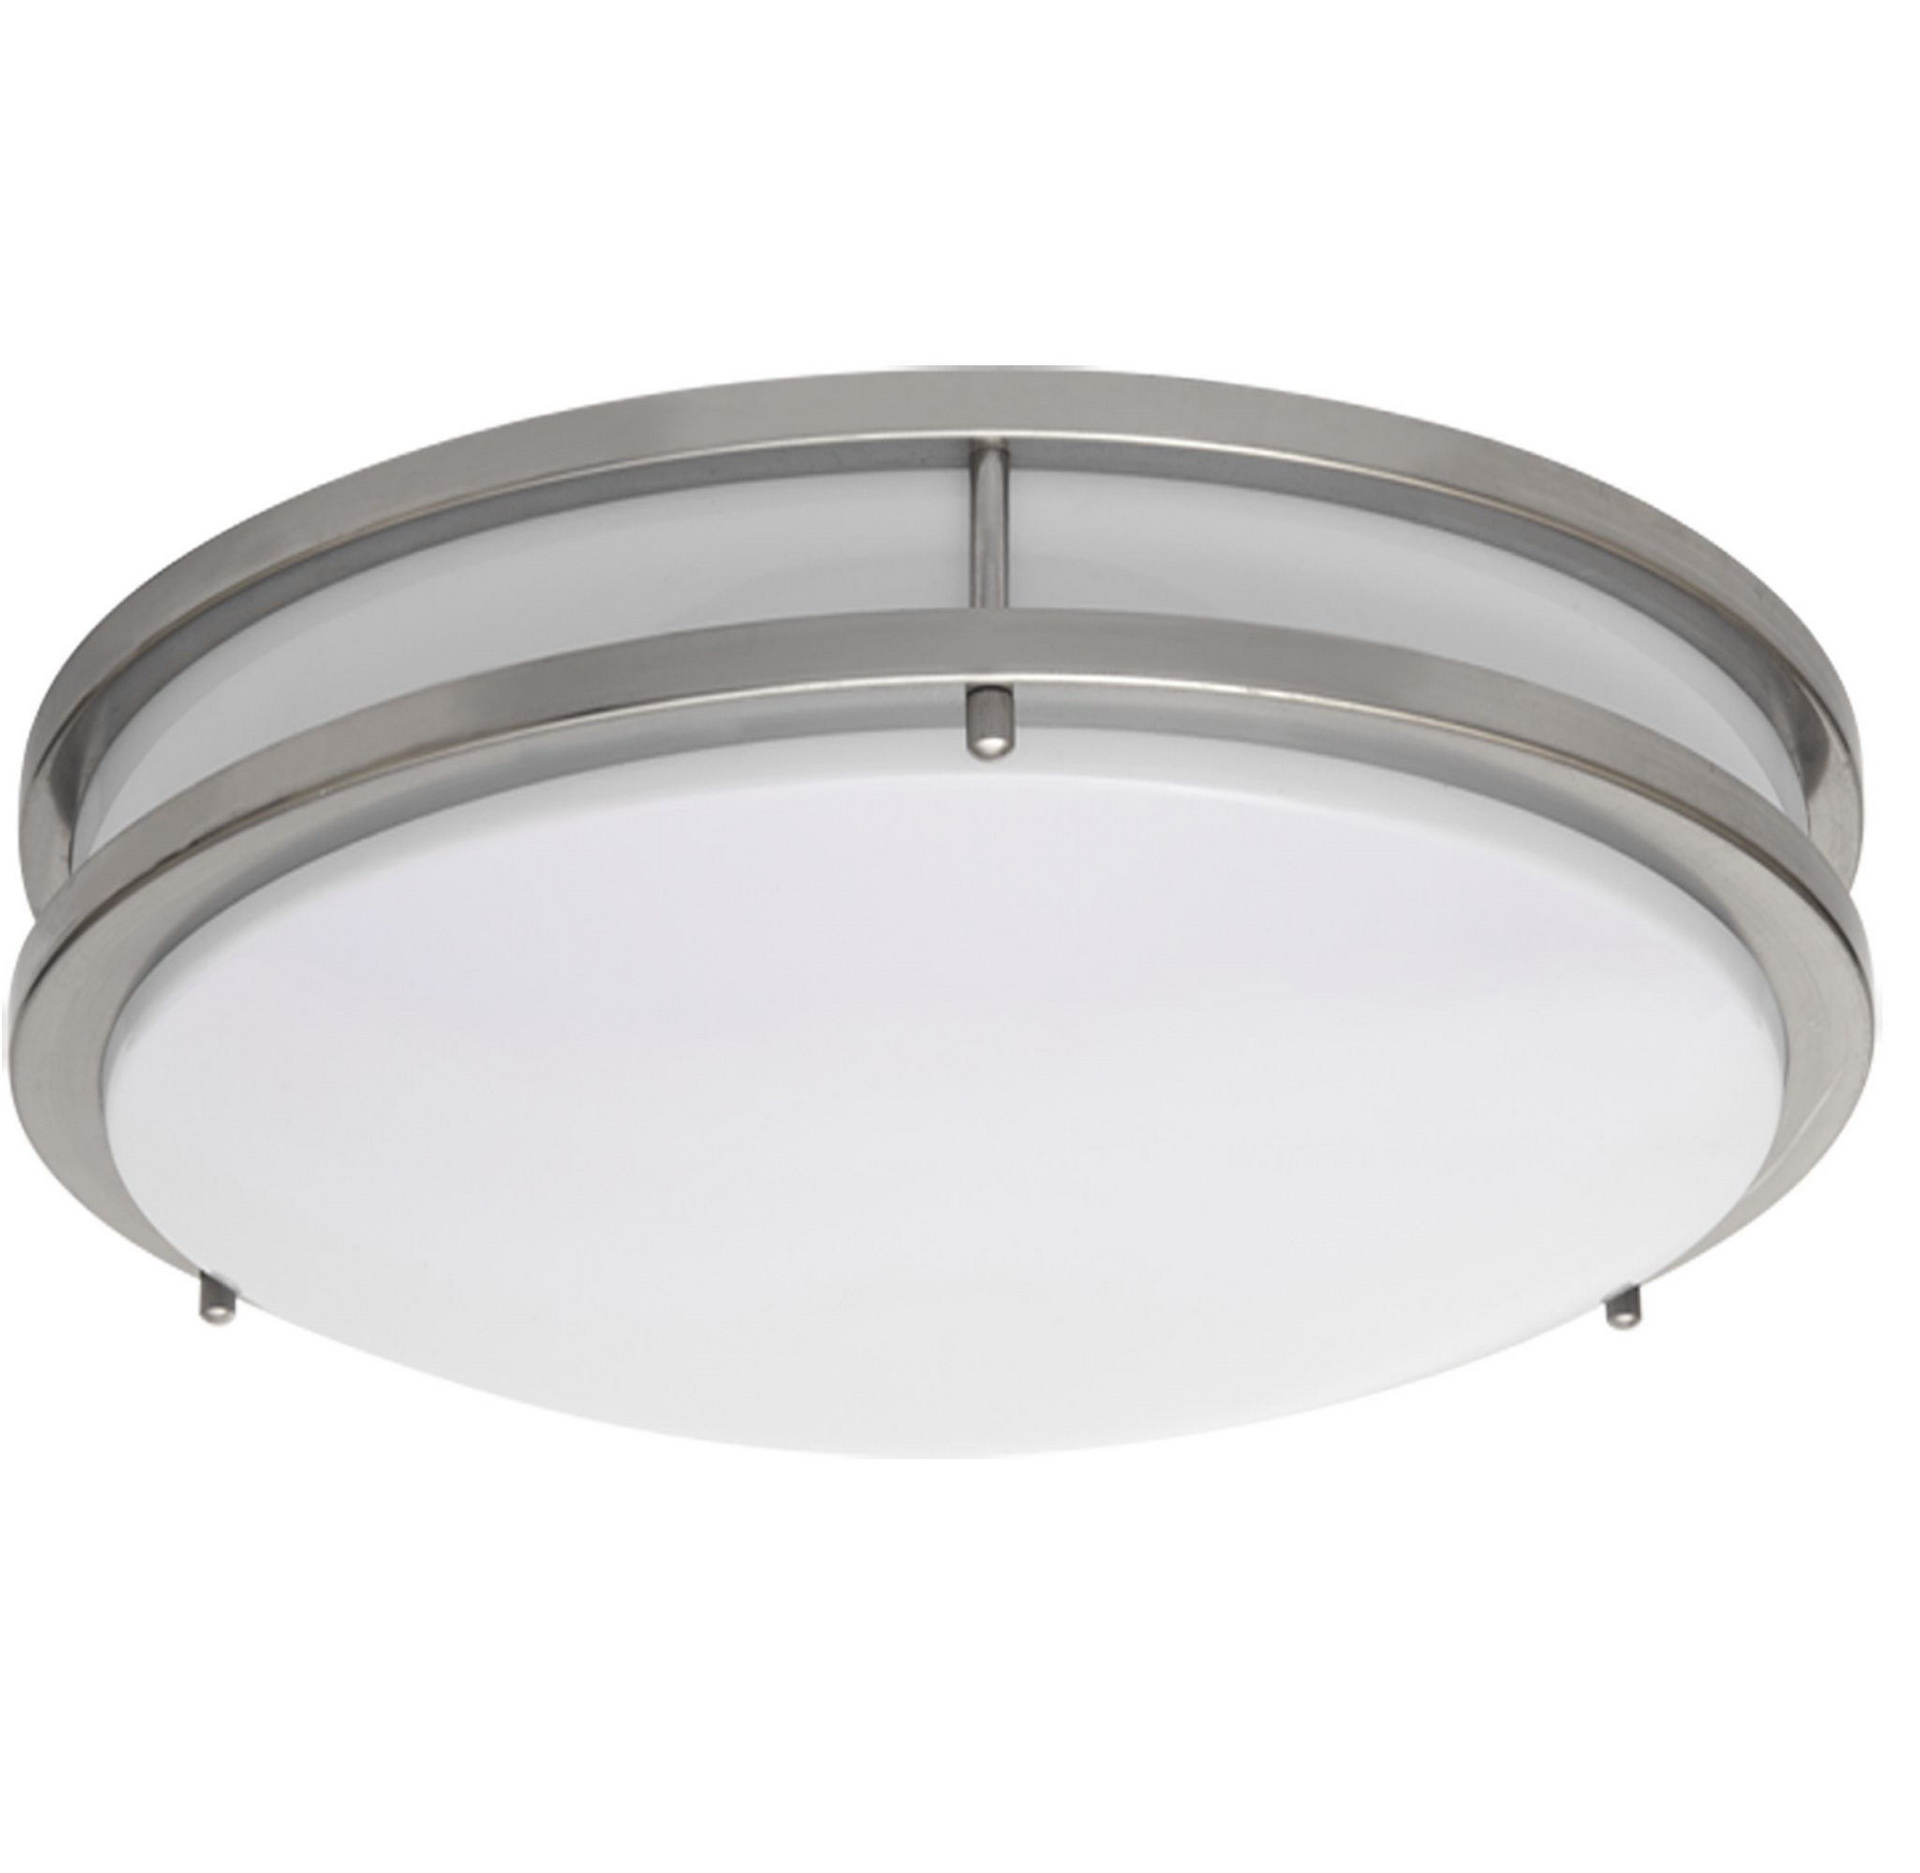 Led Flush Mount Ceiling Light Lampholder Replacement Fixture: 25 Ways To Bring Brilliant